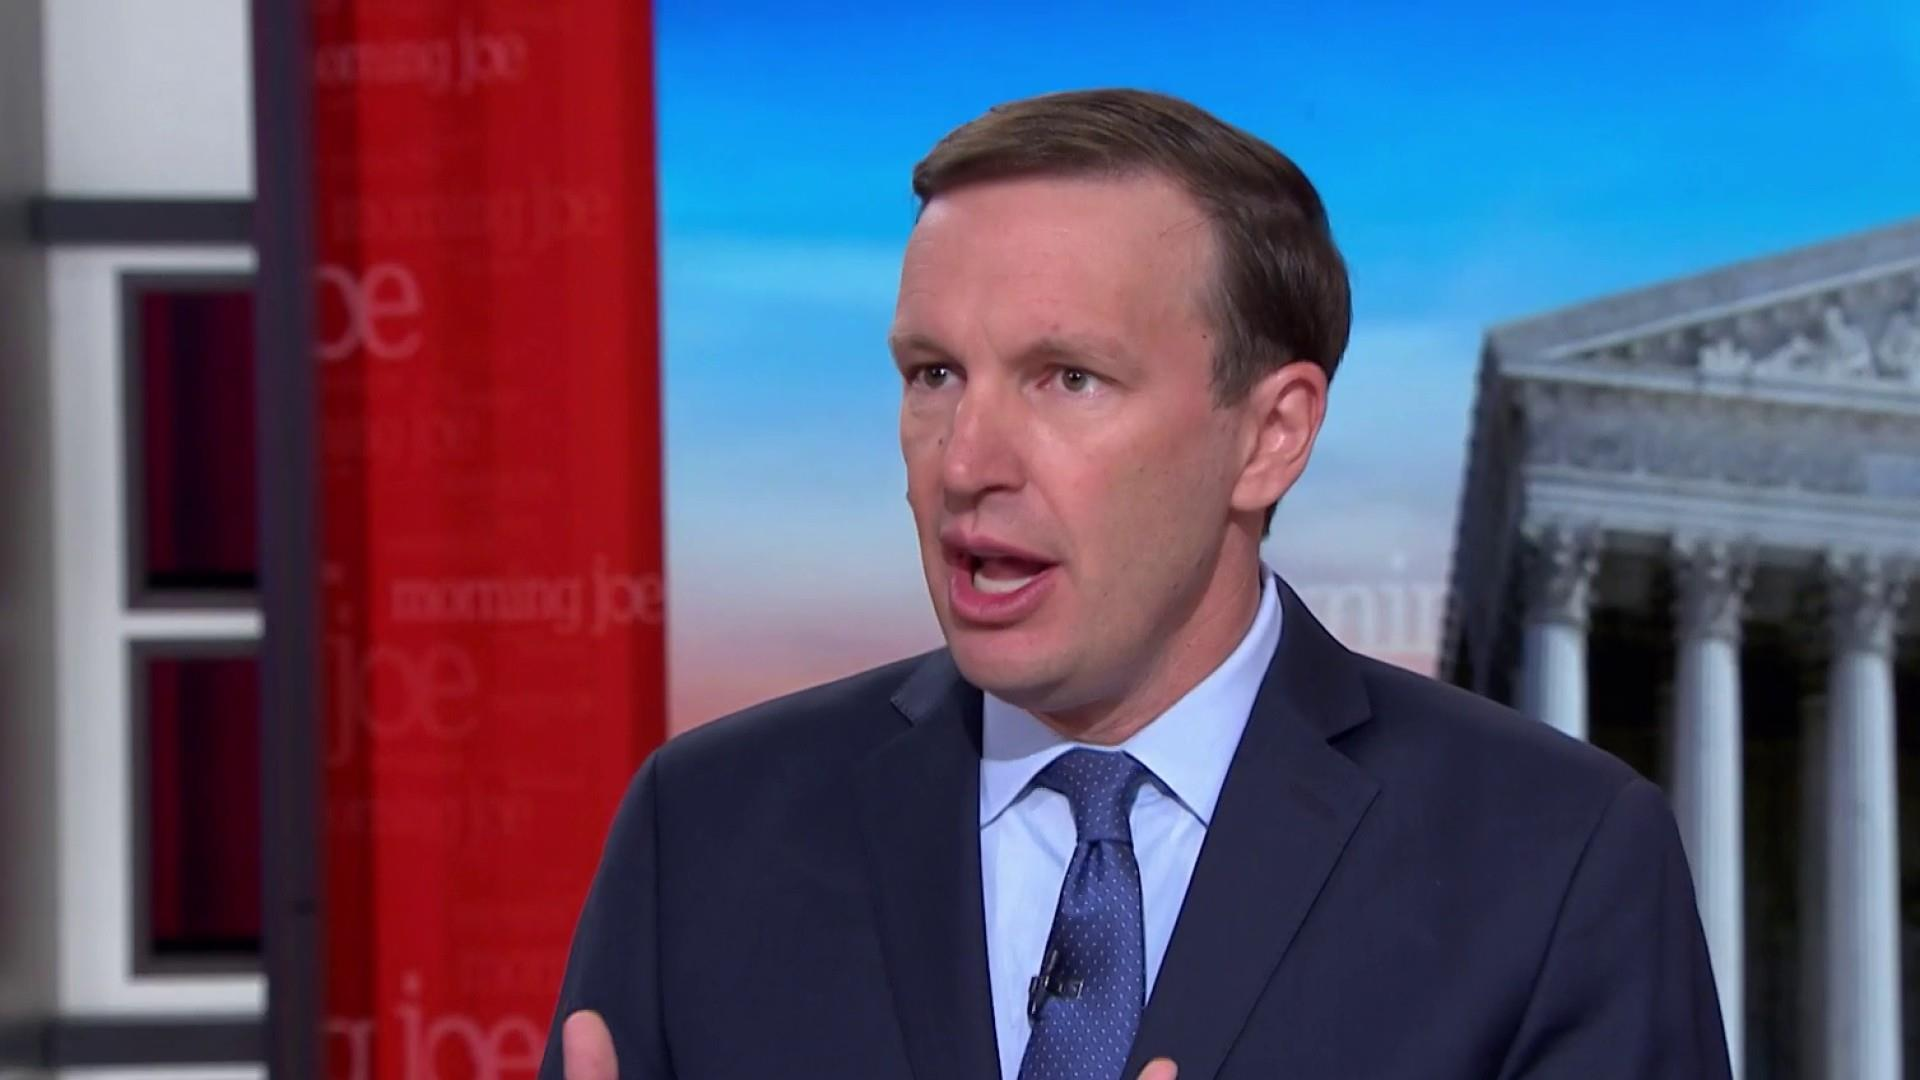 Sen. Murphy unfollows Trump on Twitter over 'negativity'